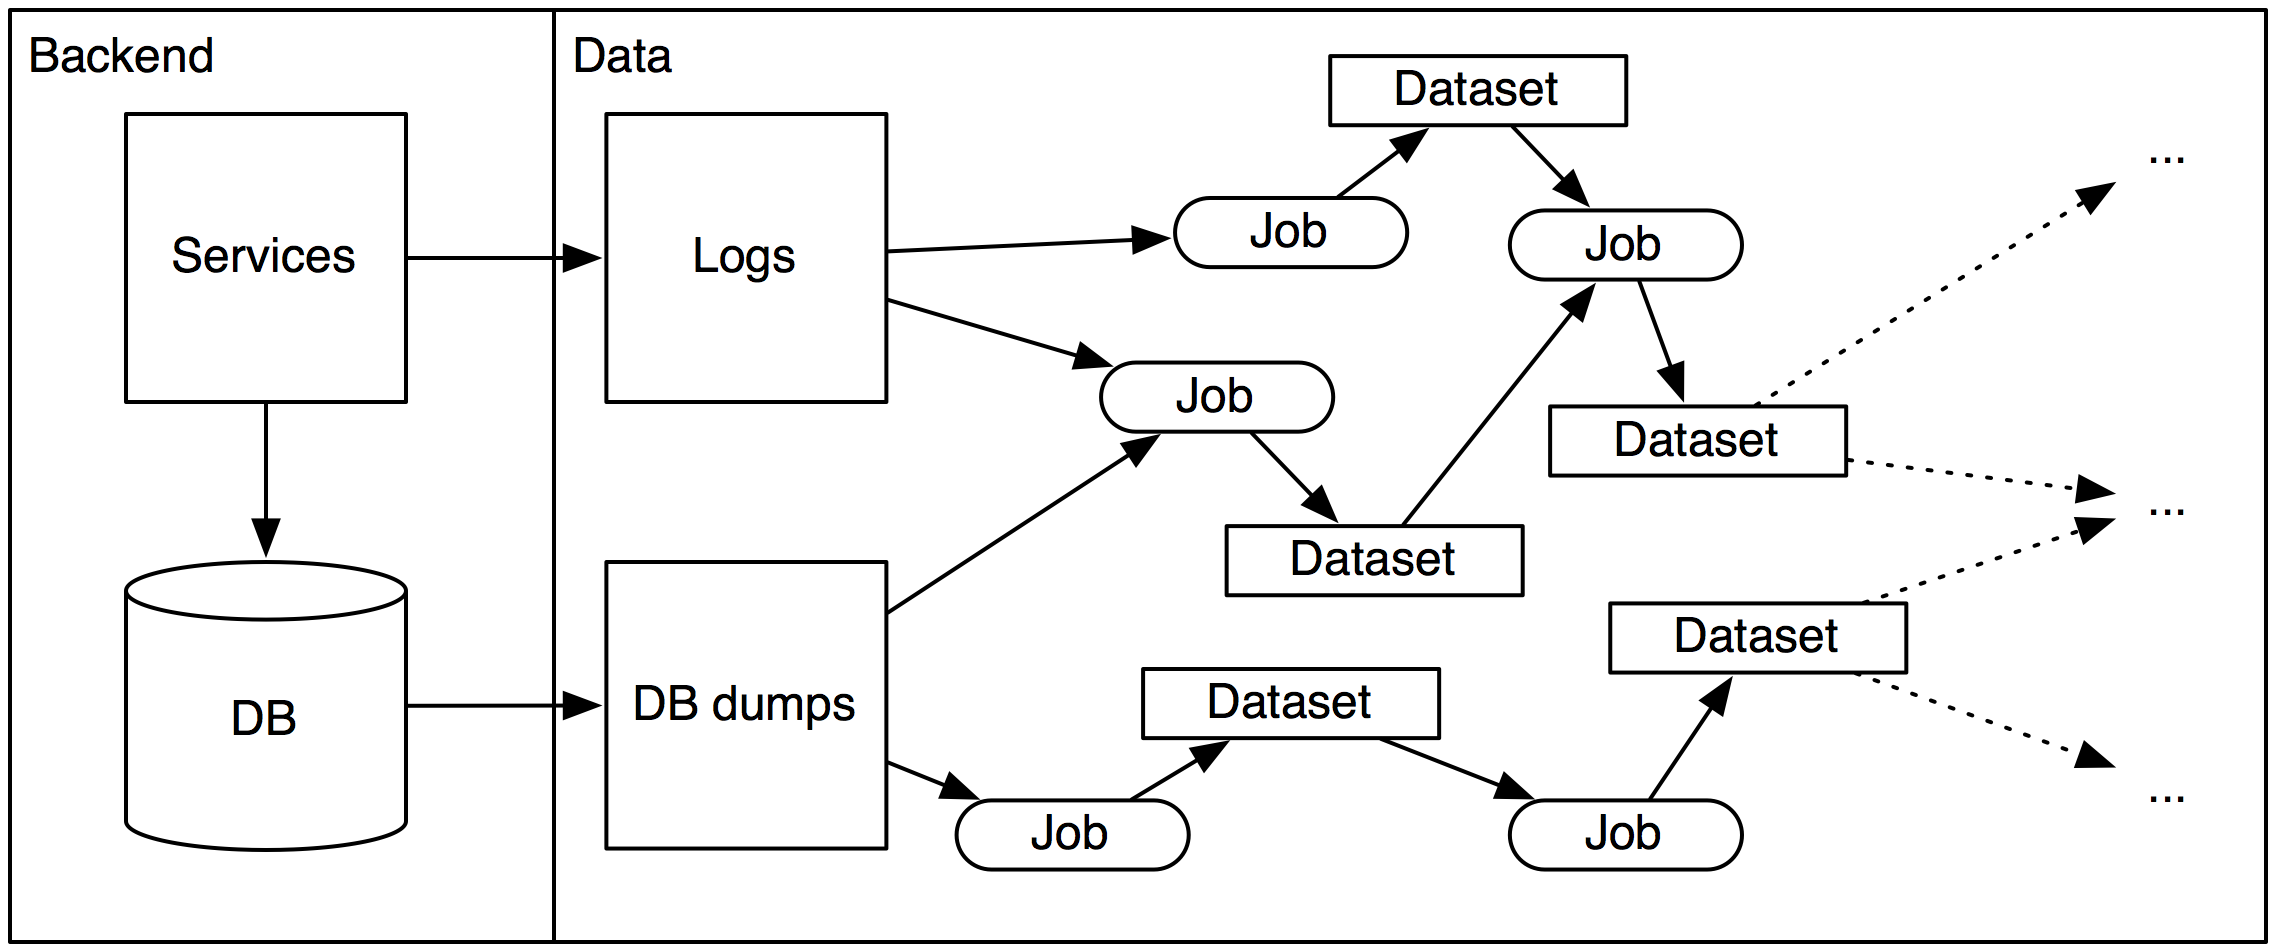 a typical data architecture